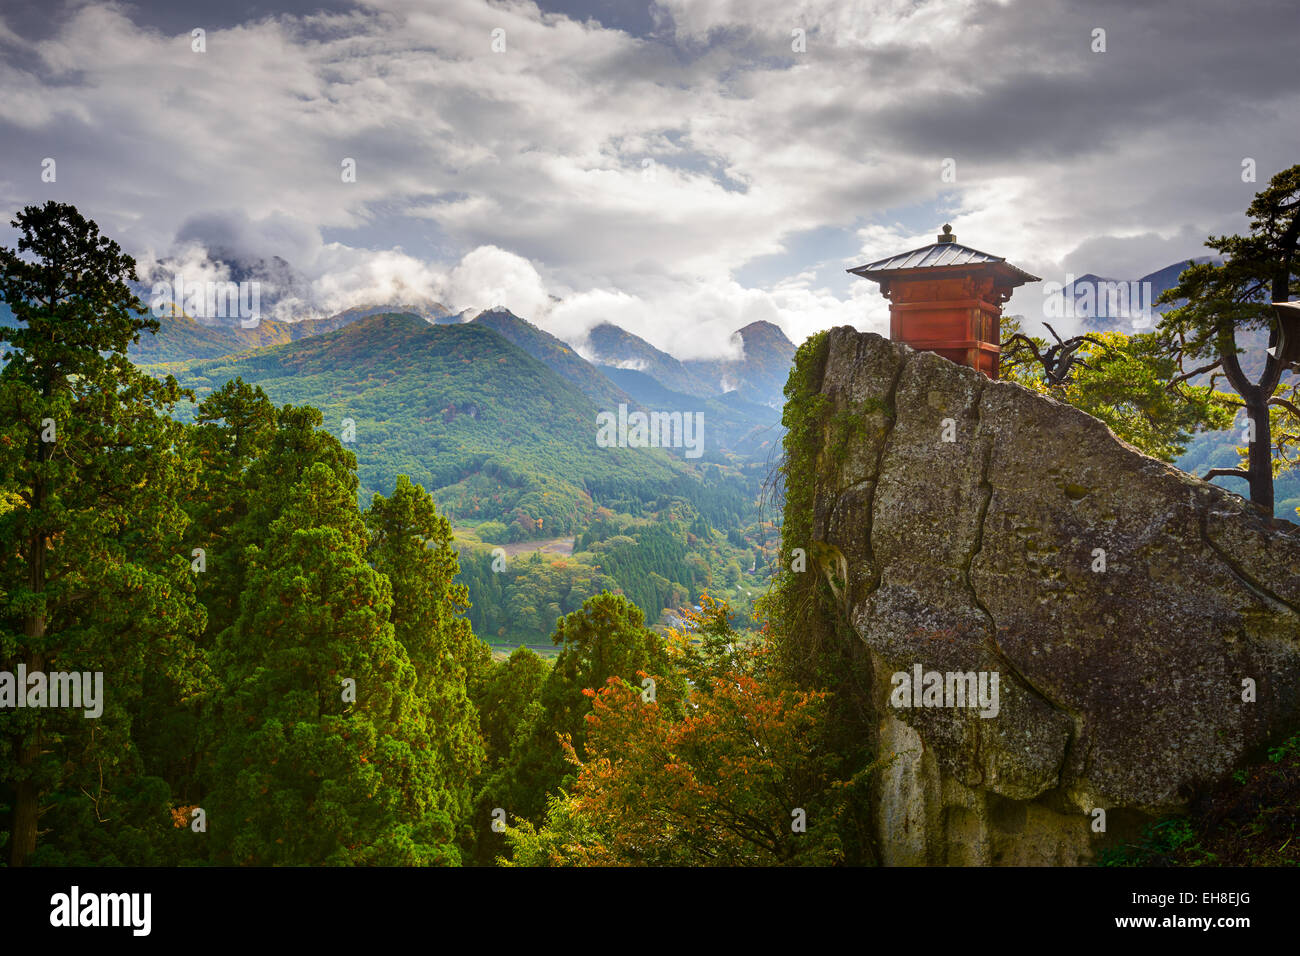 Small shrine building of Yamadera Mountain Temple in Yamagata, Japan. - Stock Image